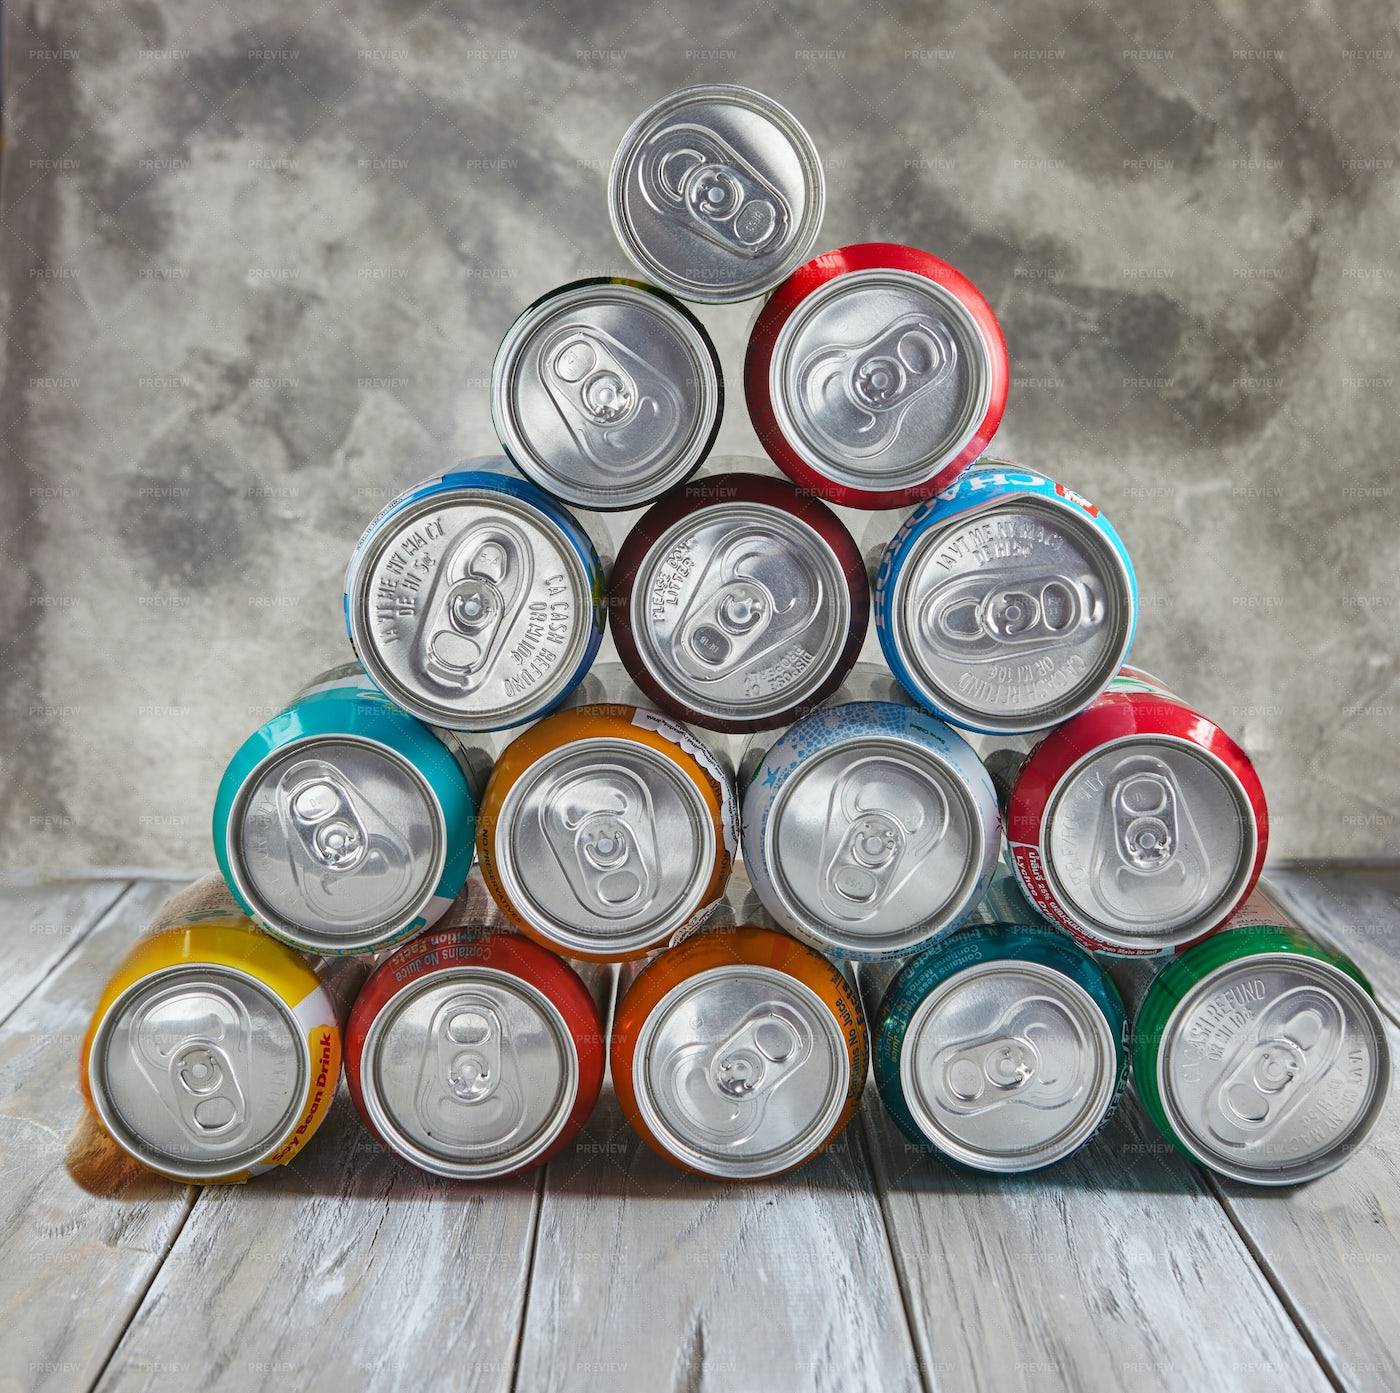 Cans Stacked As Pyramid: Stock Photos